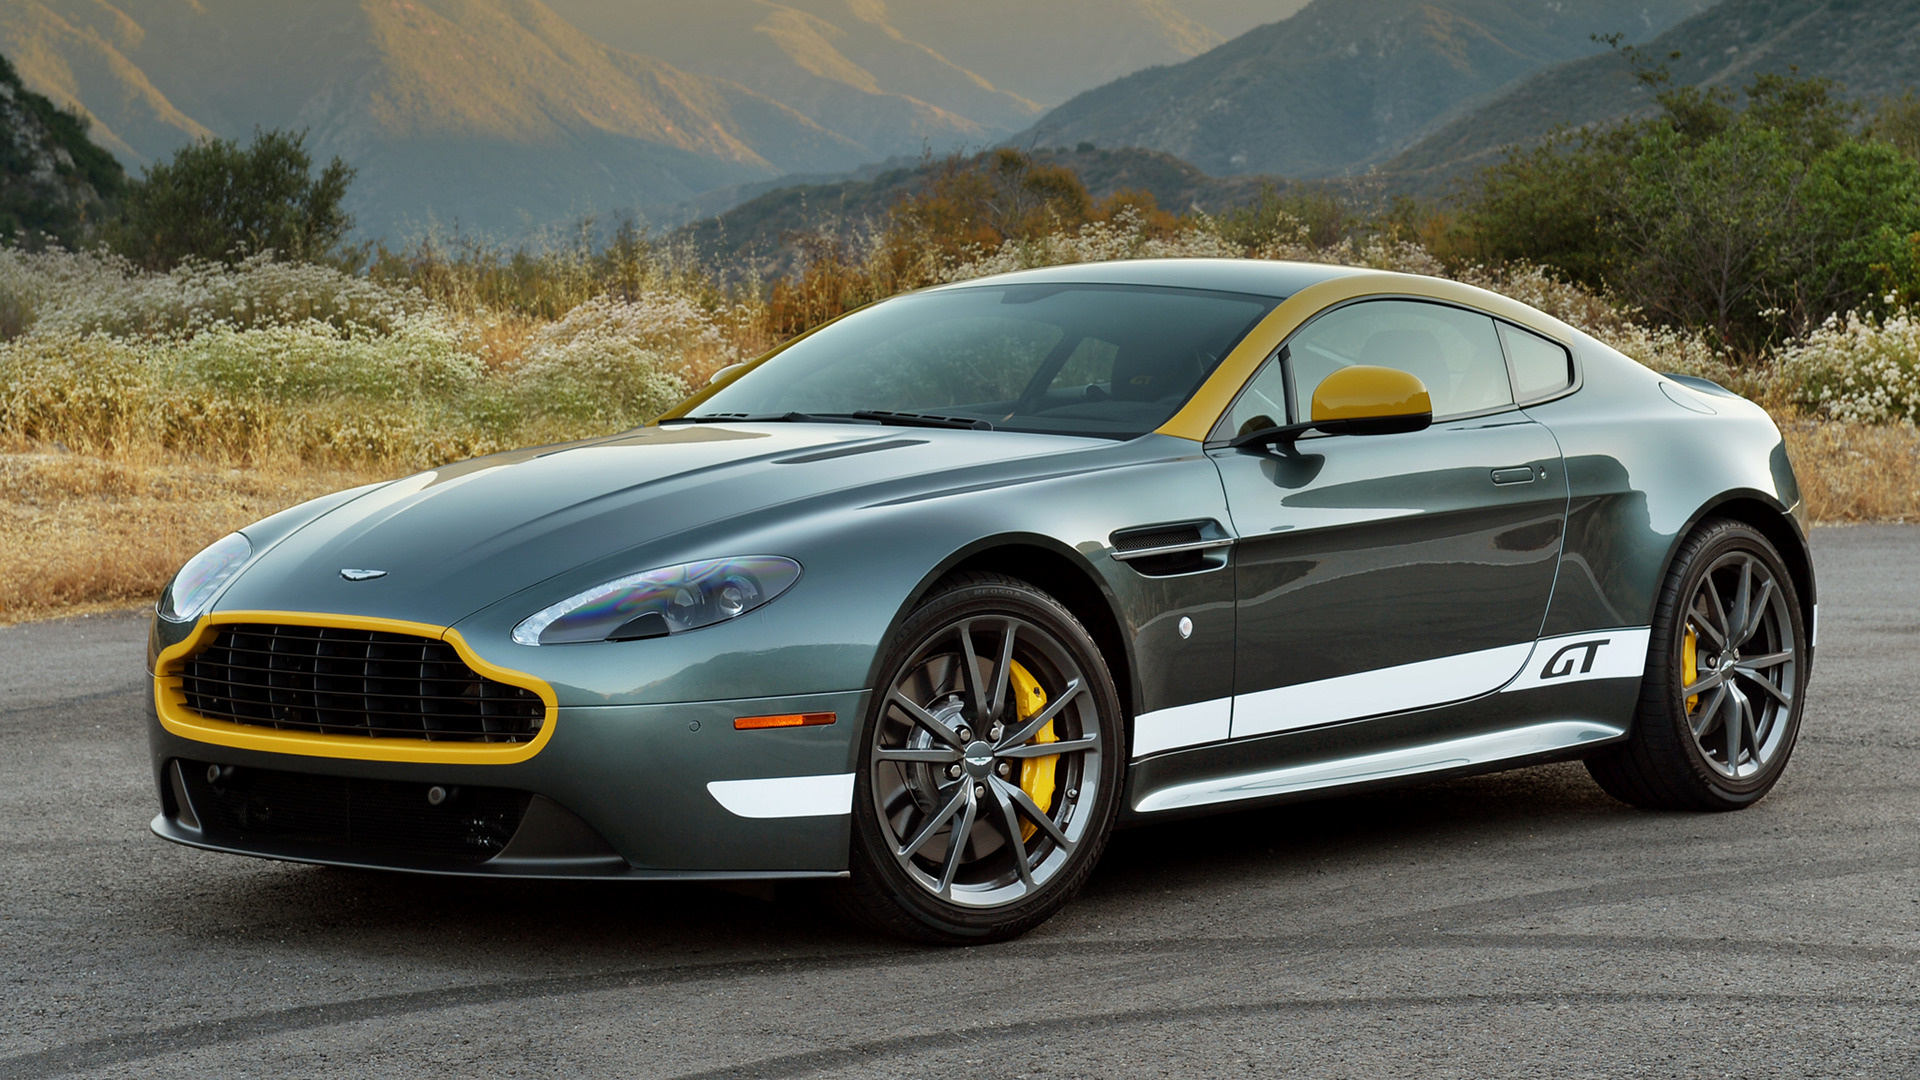 Aston Martin V8 Vantage Gt 2014 Us Wallpapers And Hd